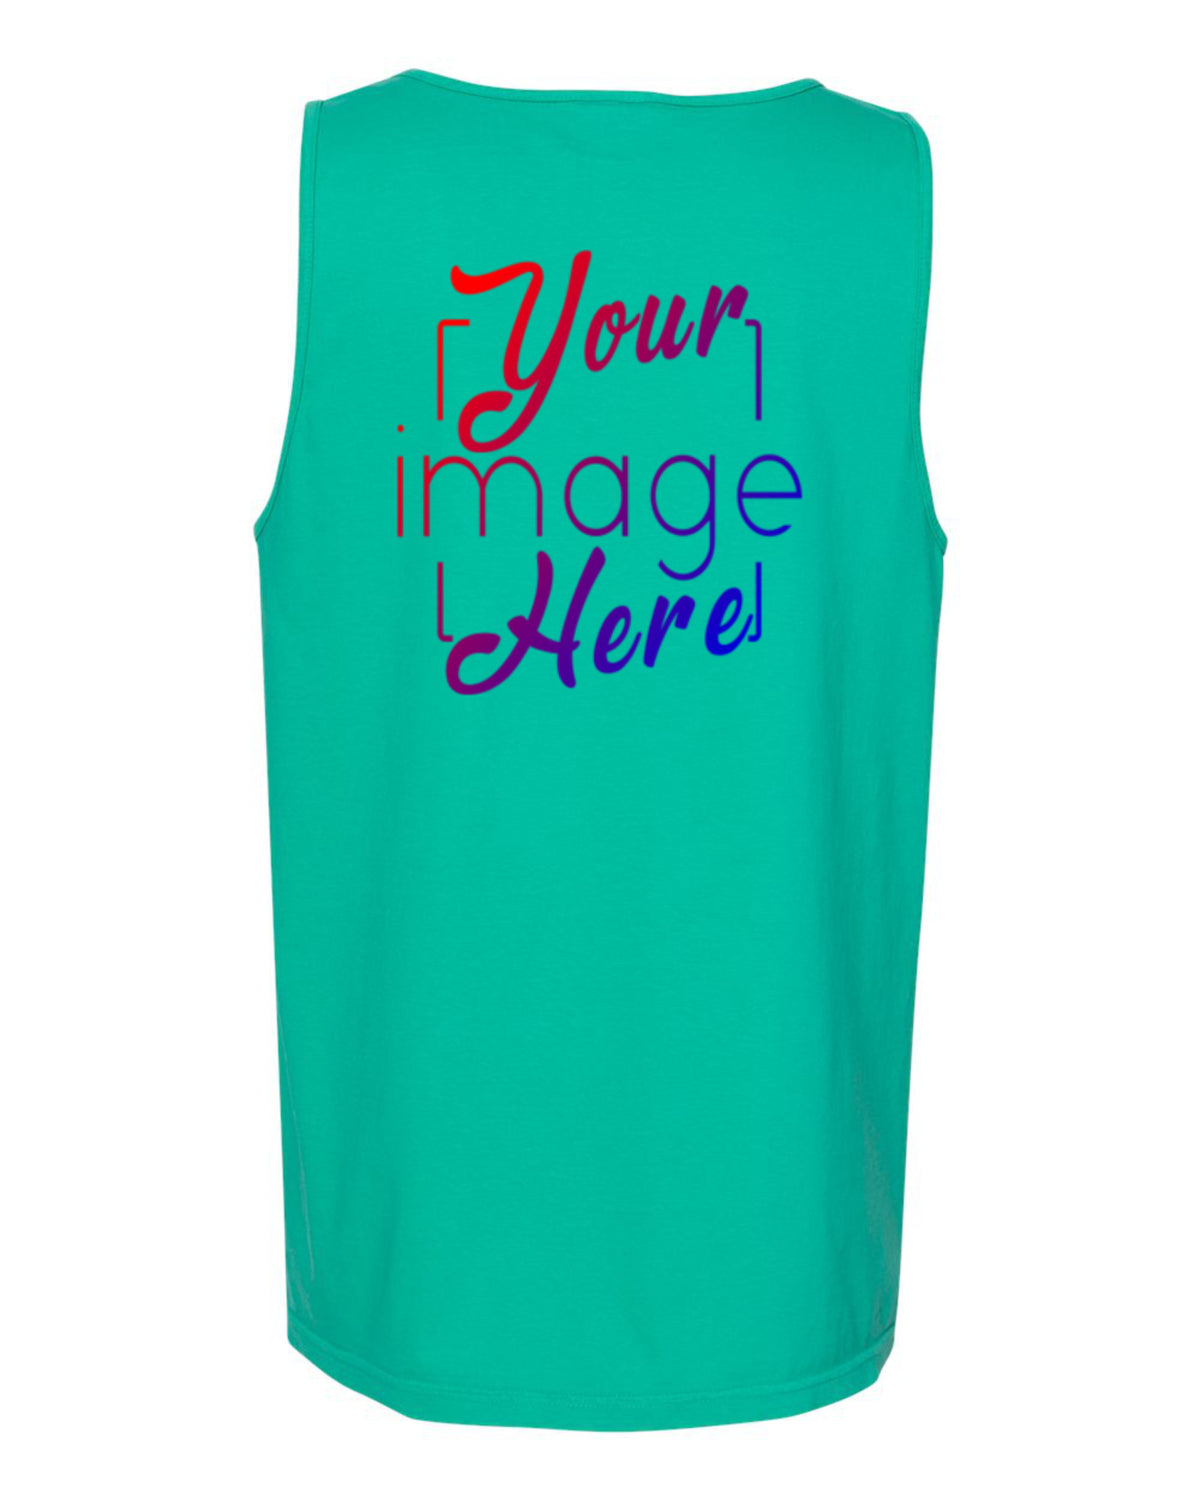 Back Image of Comfort Colors Tank Top for Custom Printing